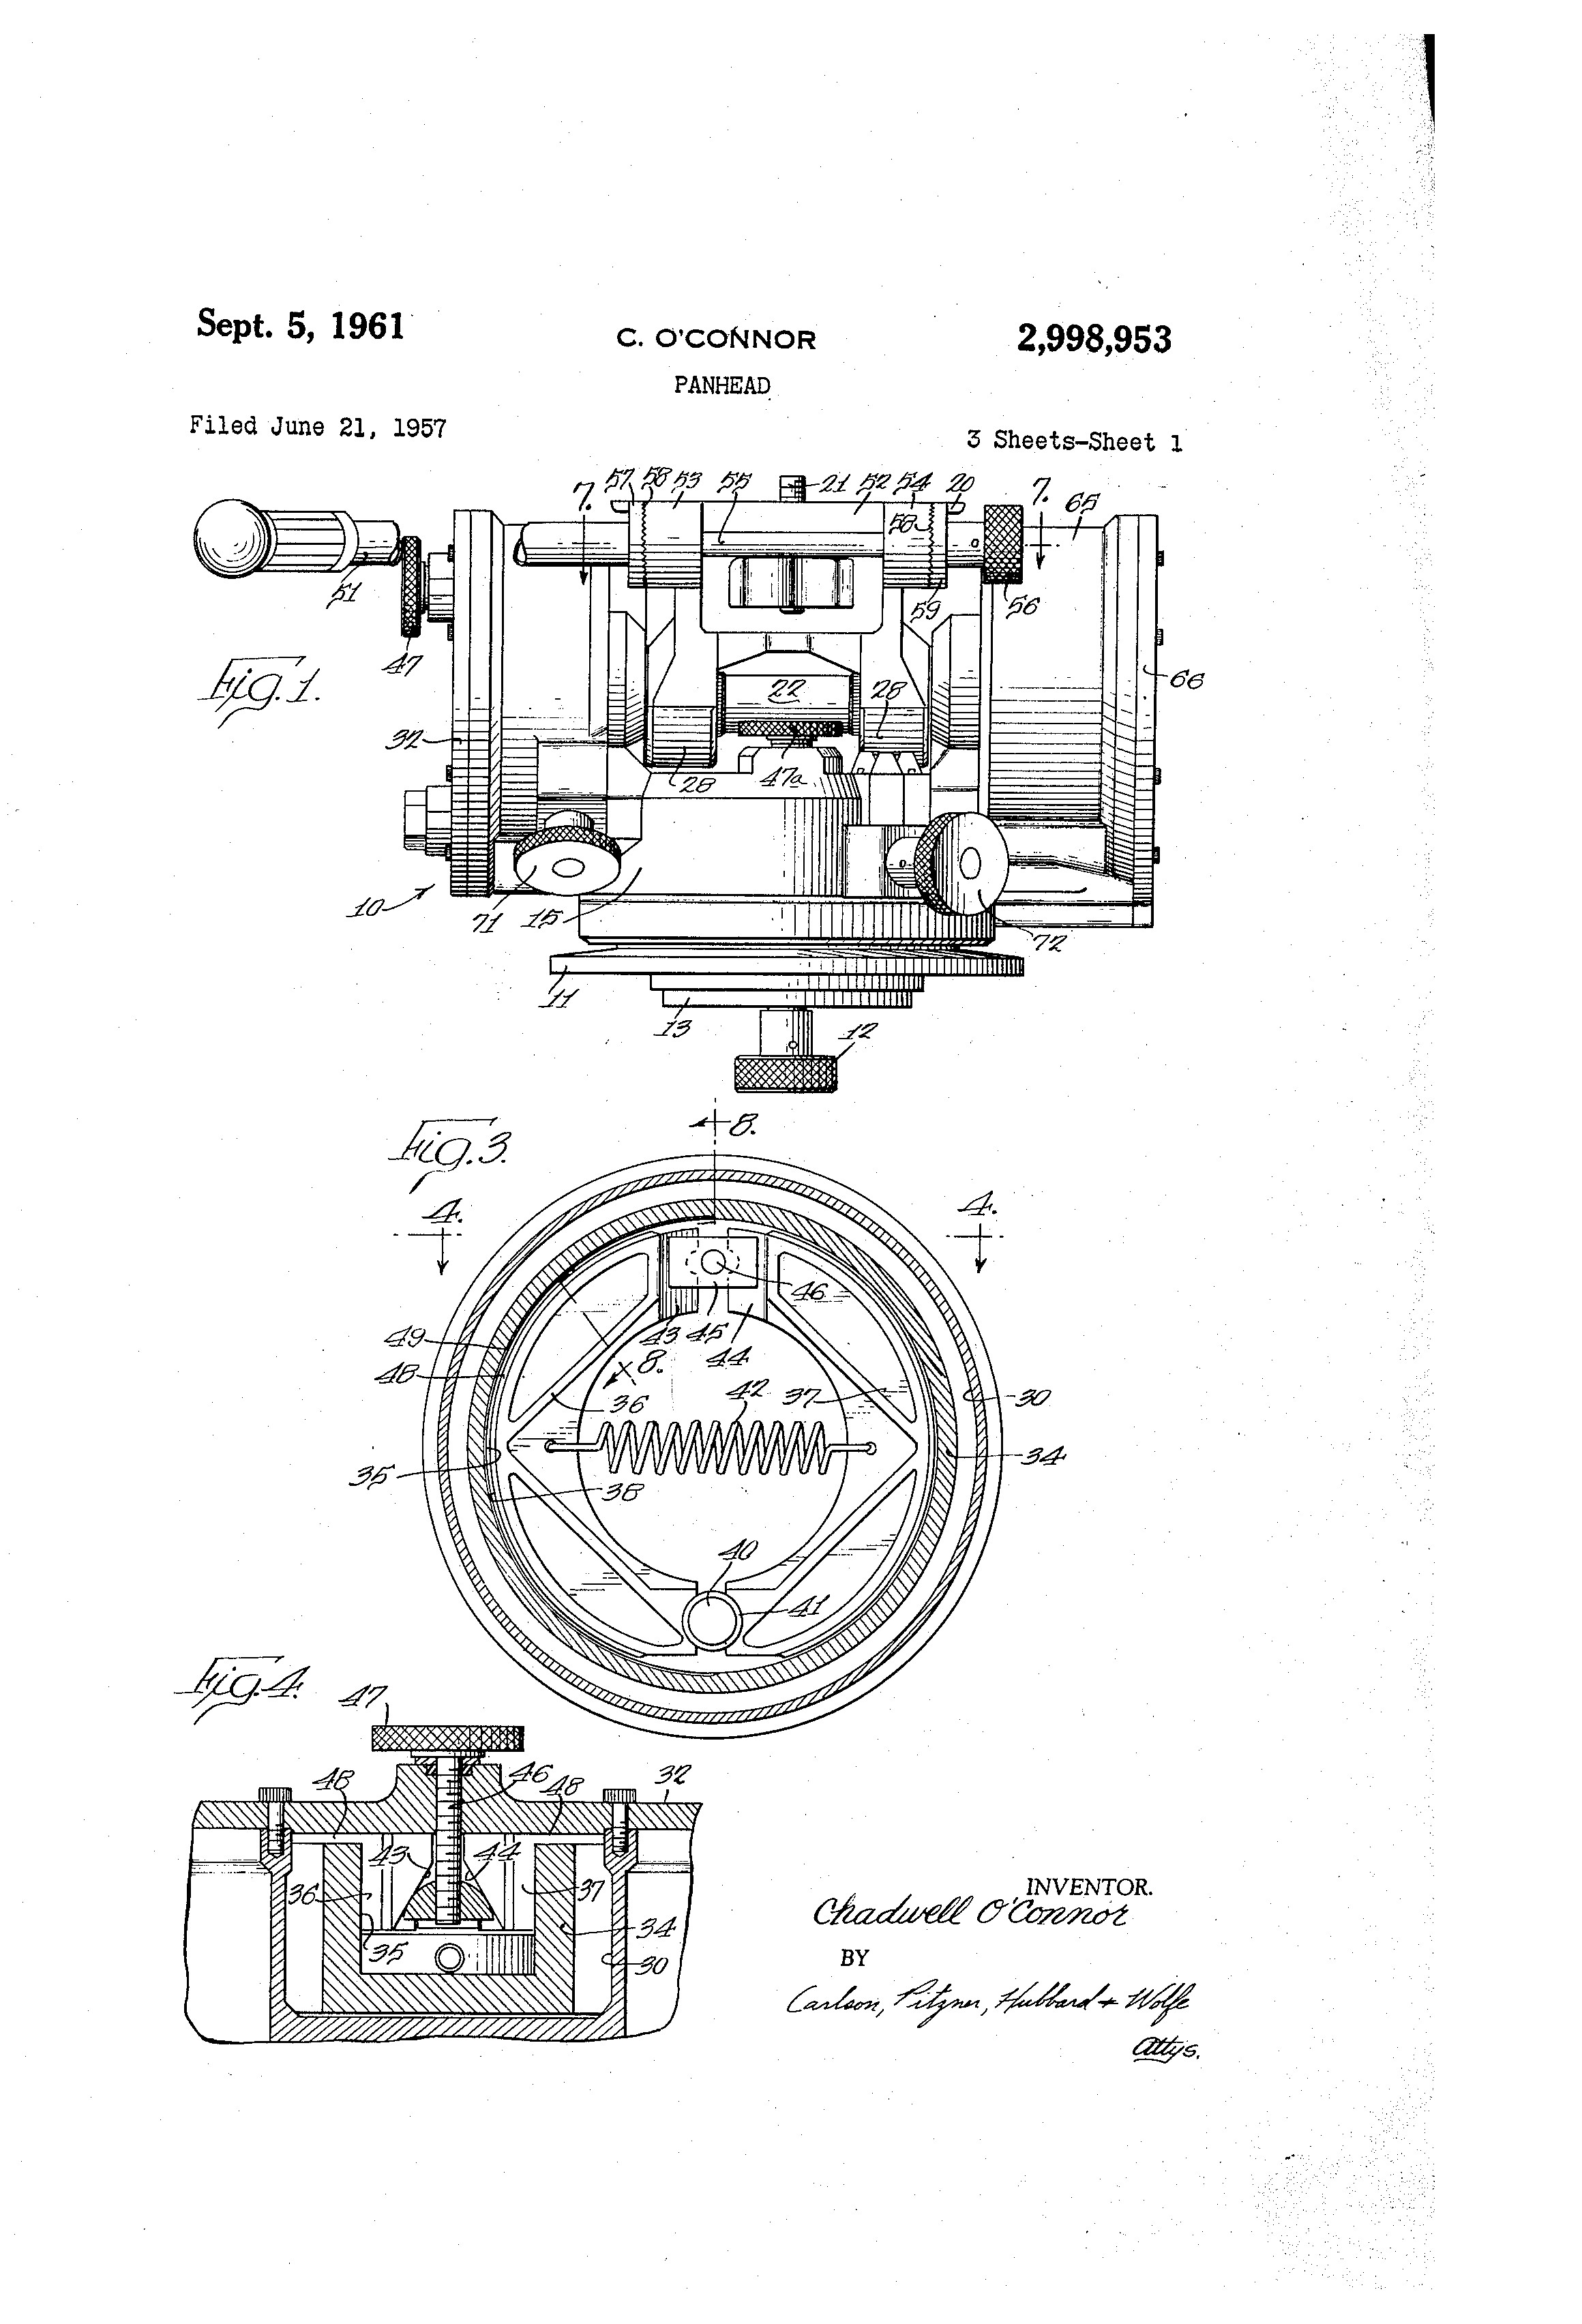 drawing of harley panhead engine